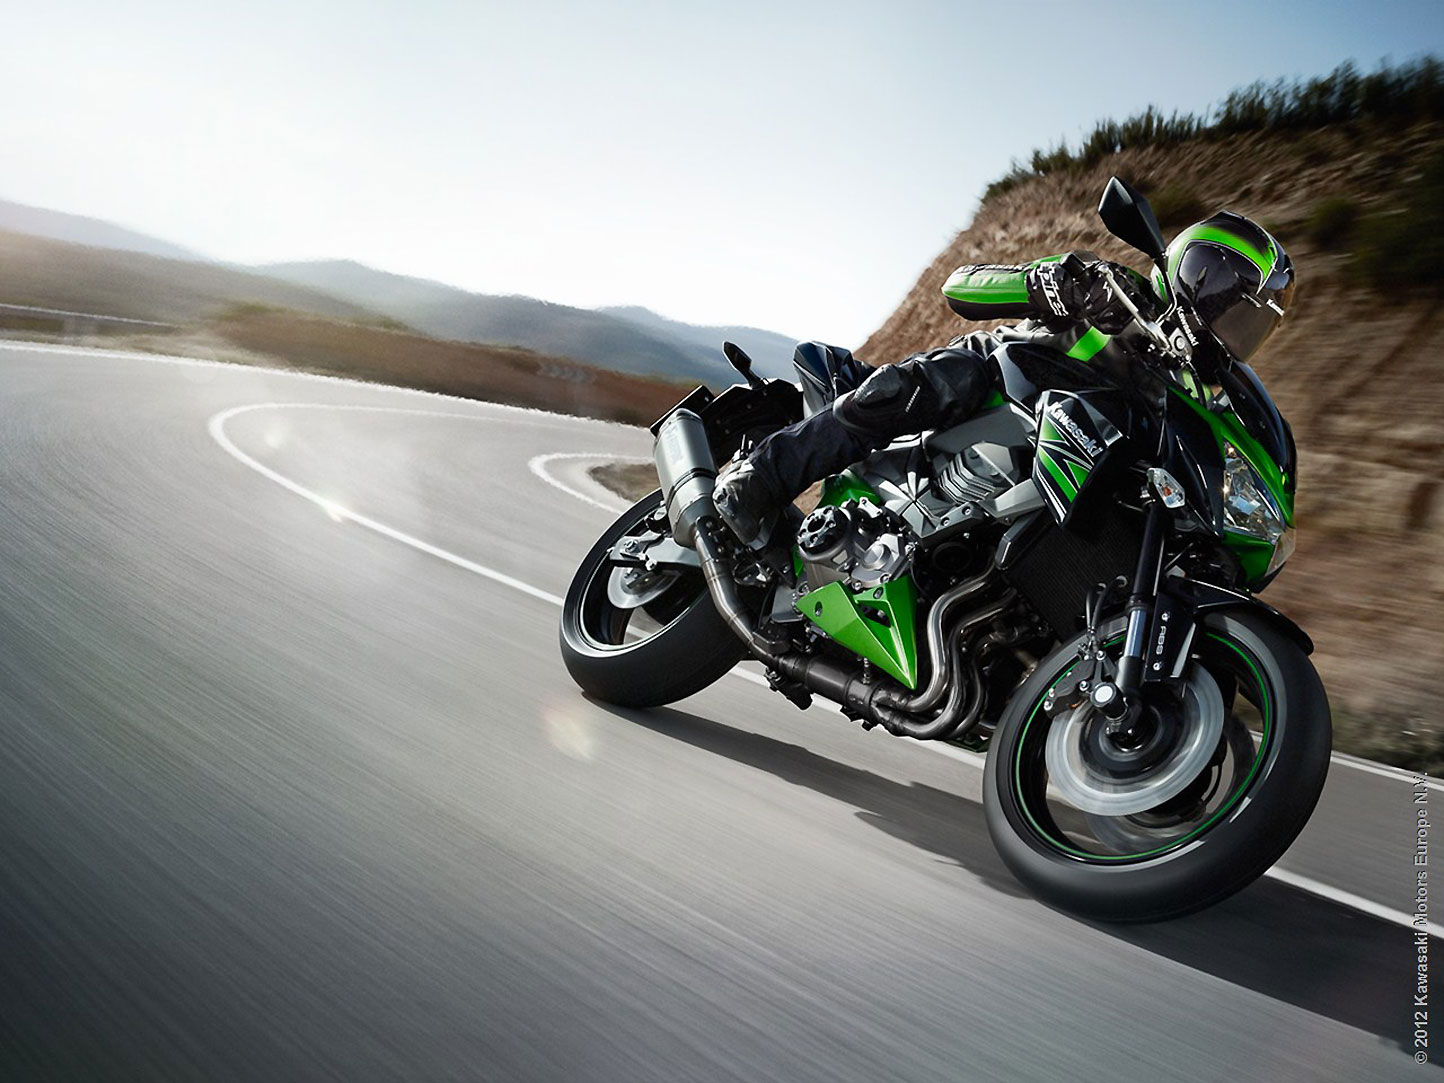 2013 Kawasaki Z800 @ Top Speed